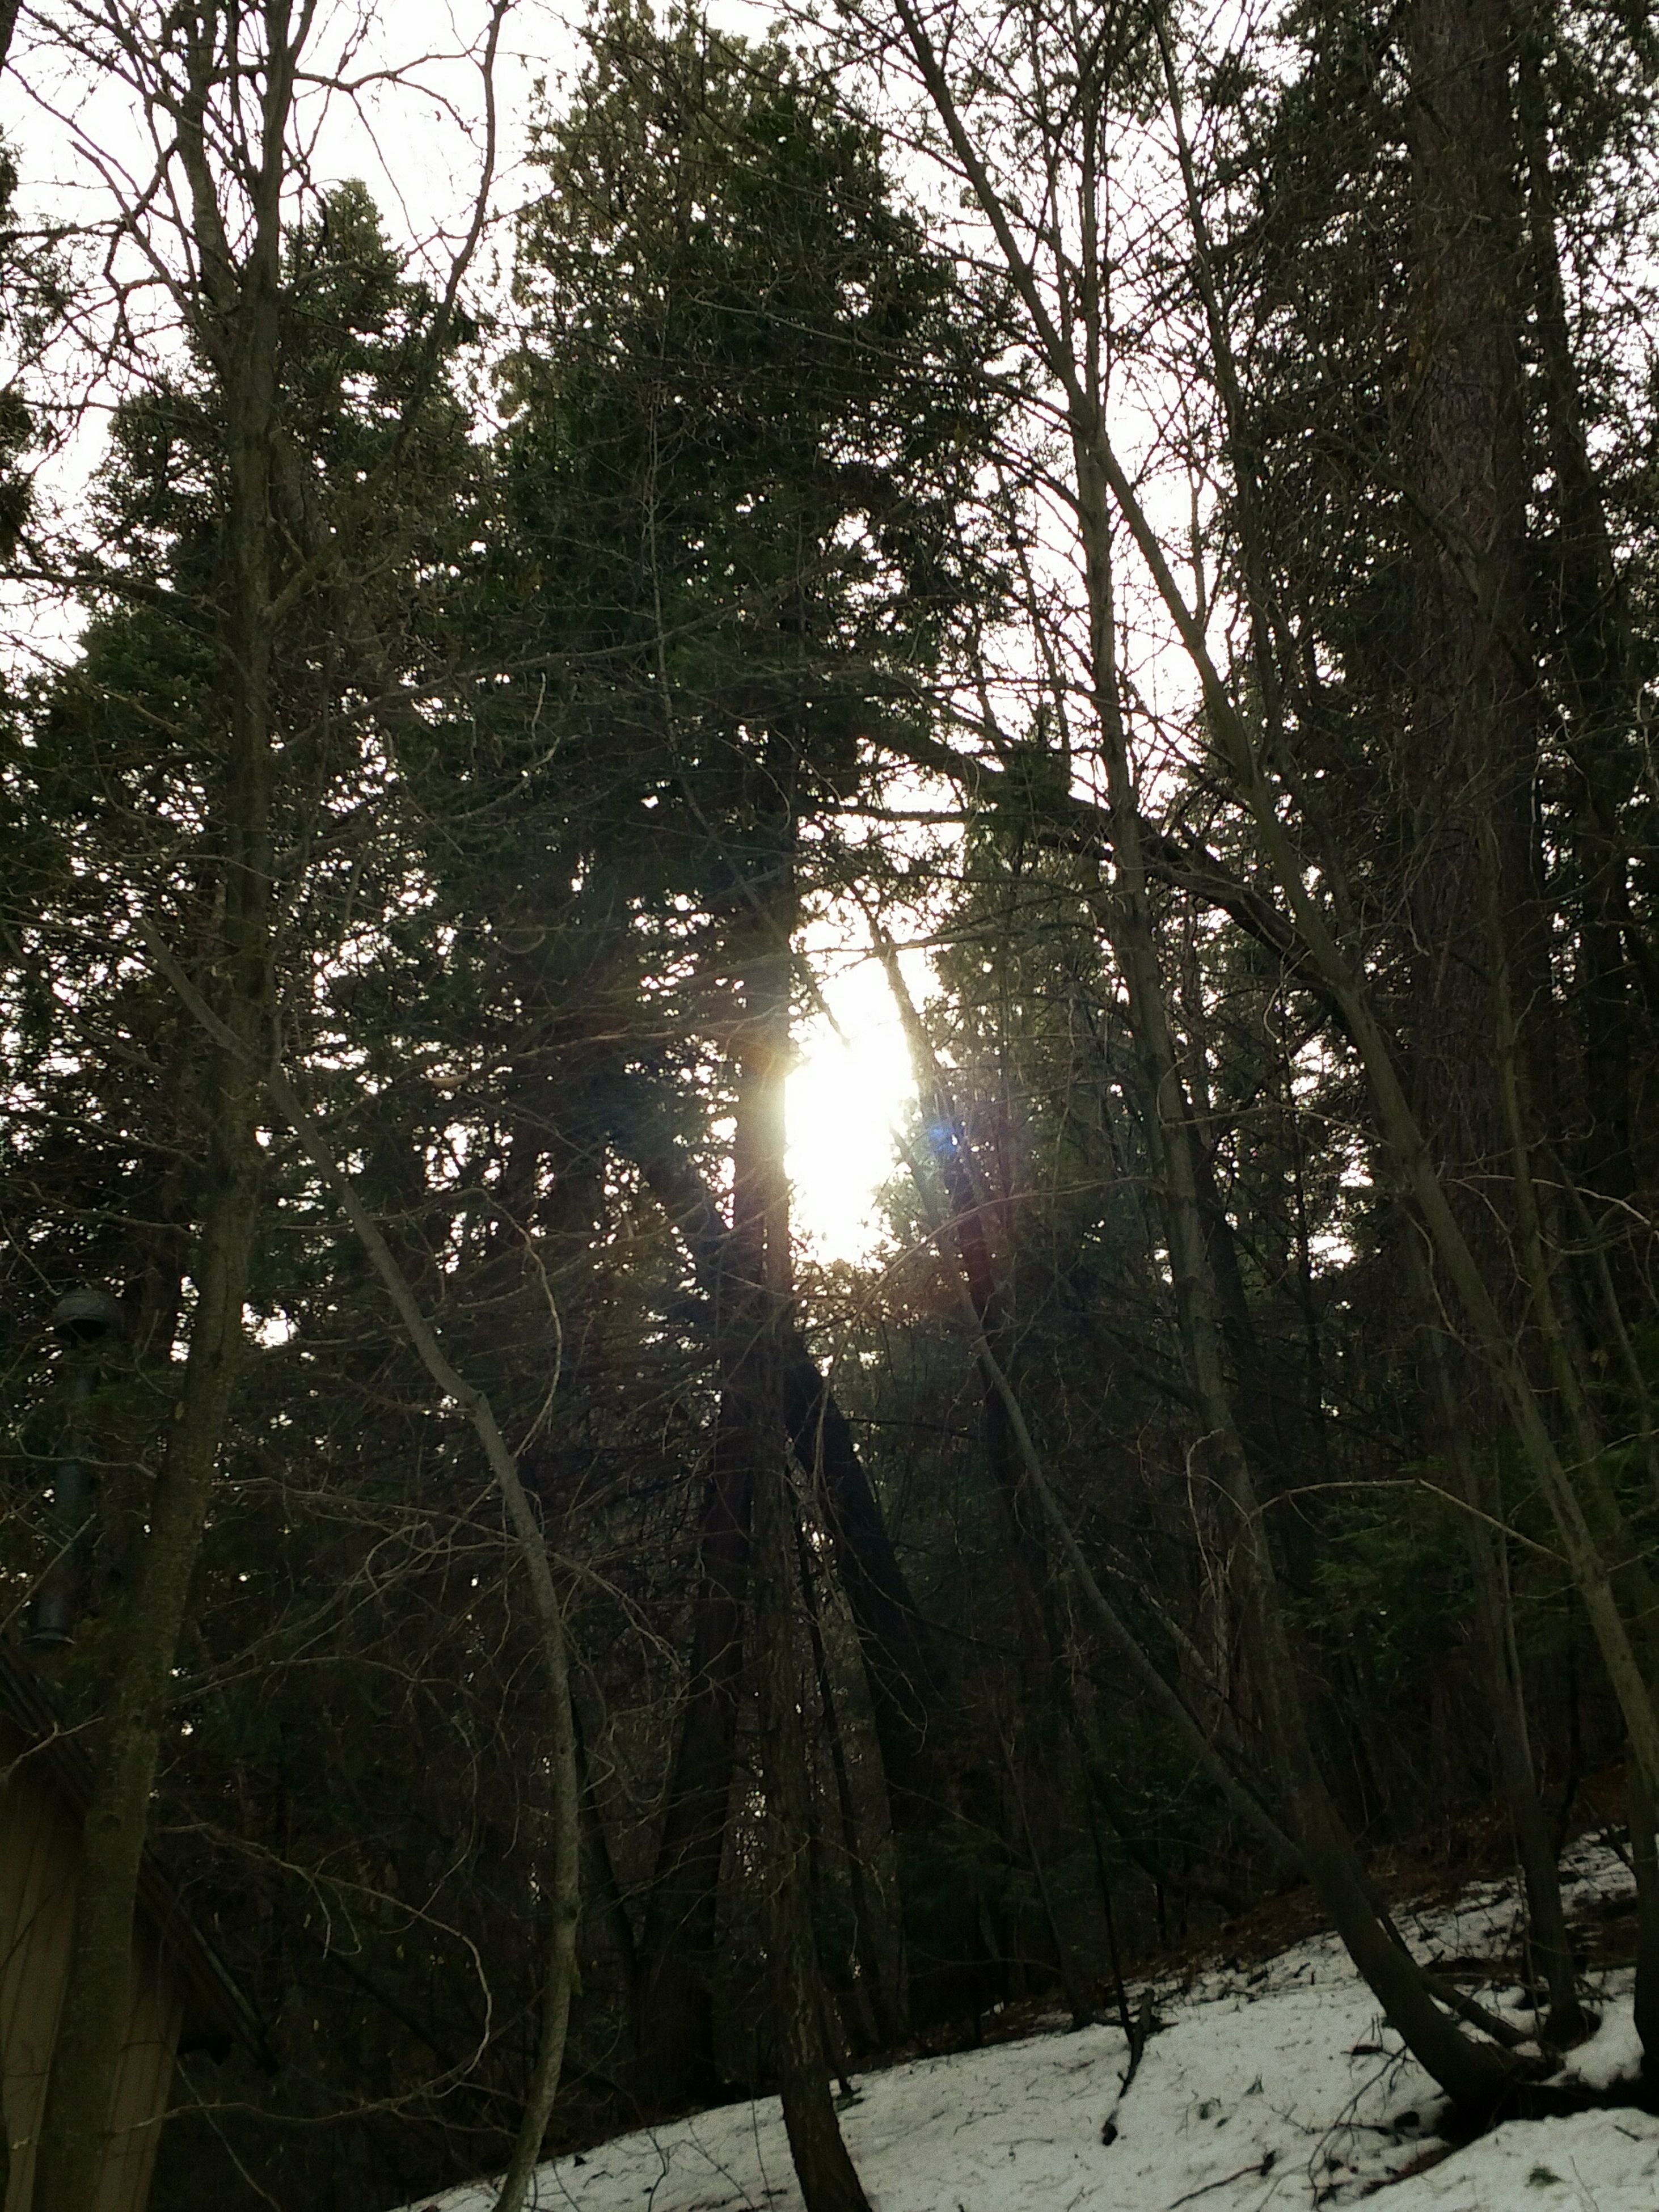 tree, sun, growth, tranquility, nature, sunlight, beauty in nature, tree trunk, branch, sunbeam, tranquil scene, lens flare, silhouette, scenics, forest, low angle view, outdoors, back lit, sky, no people